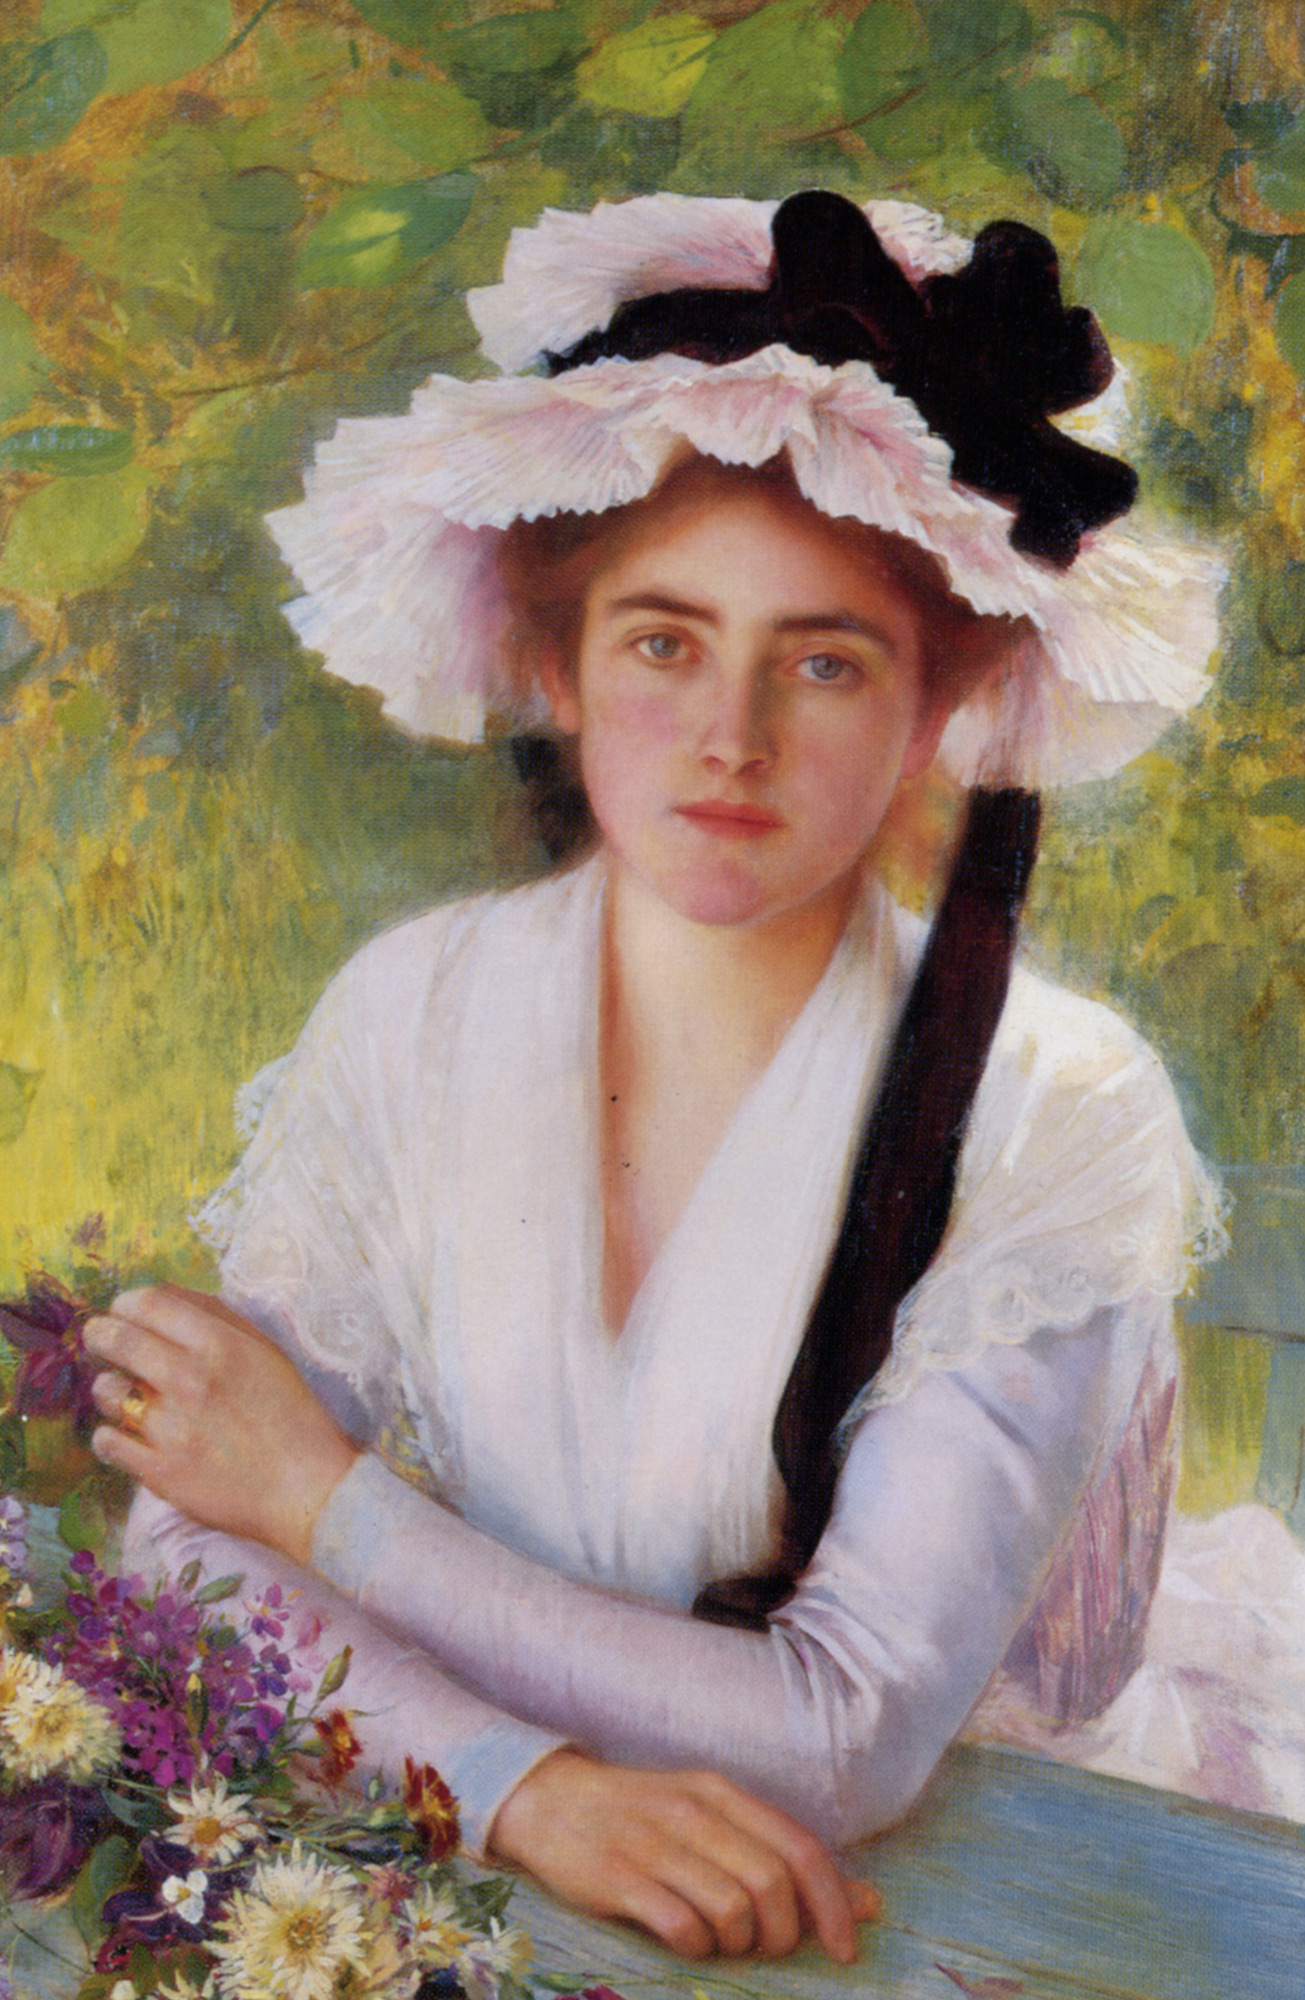 In The Garden :: Albert Lynch  - Young beauties portraits in art and painting ôîòî